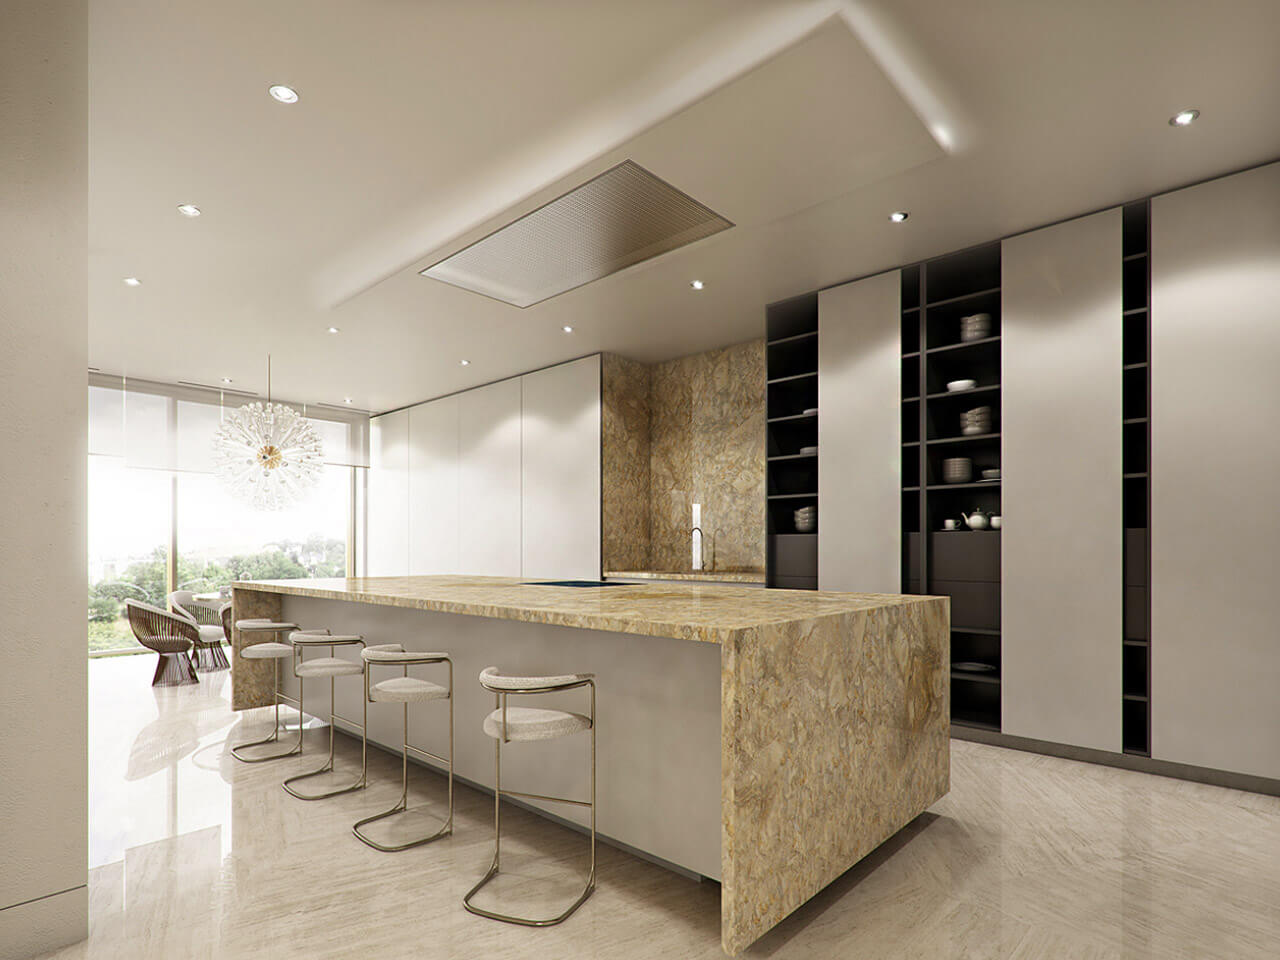 A contemporary light kitchen with marble finish and inset spotlighting